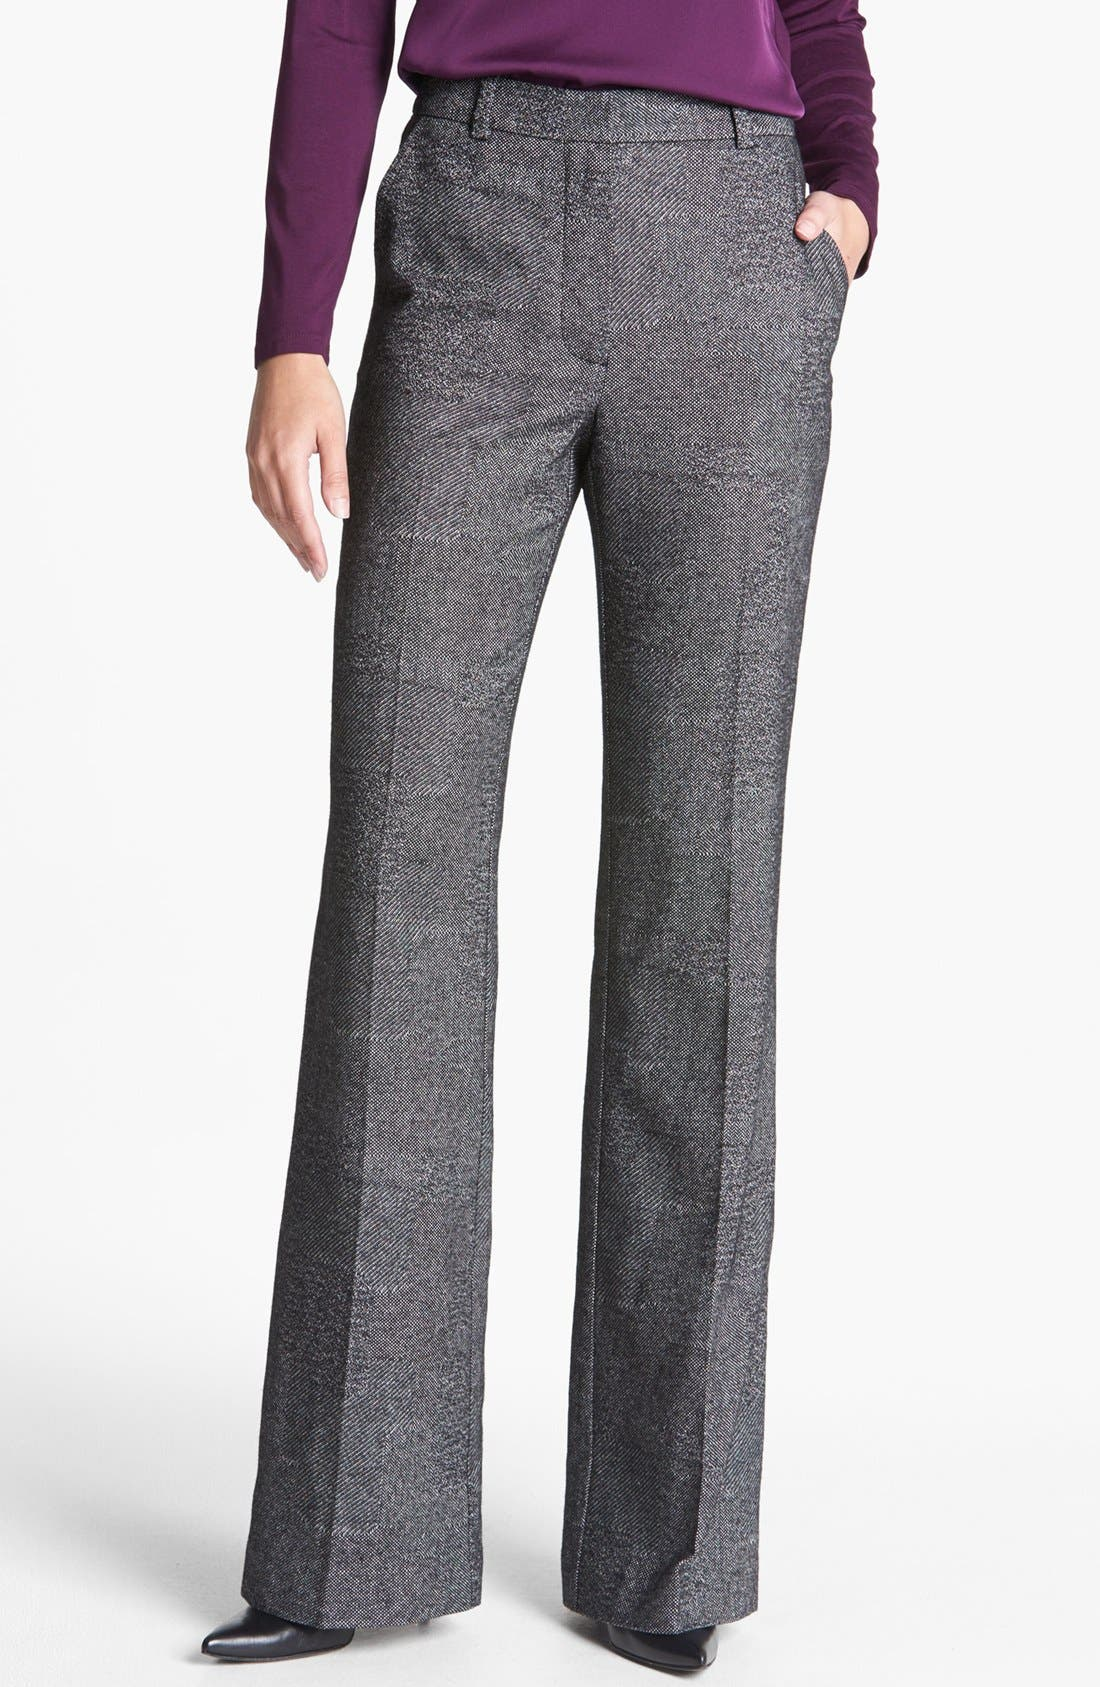 Main Image - Trina Turk 'Approach' Cotton Blend Pants